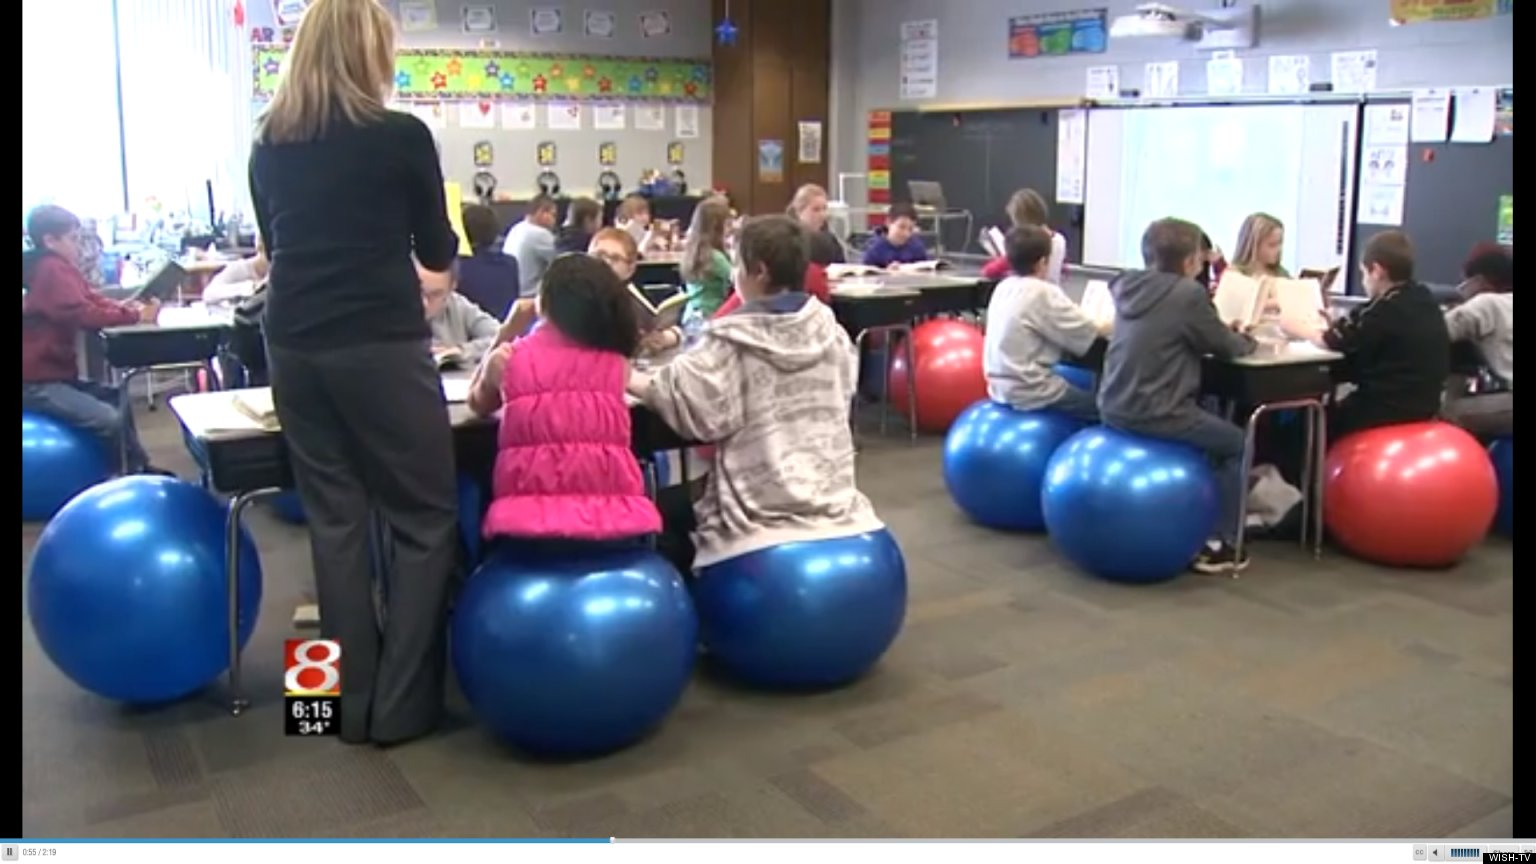 bouncy ball chair plastic folding lounge sara wright indiana teacher swaps exercise balls for